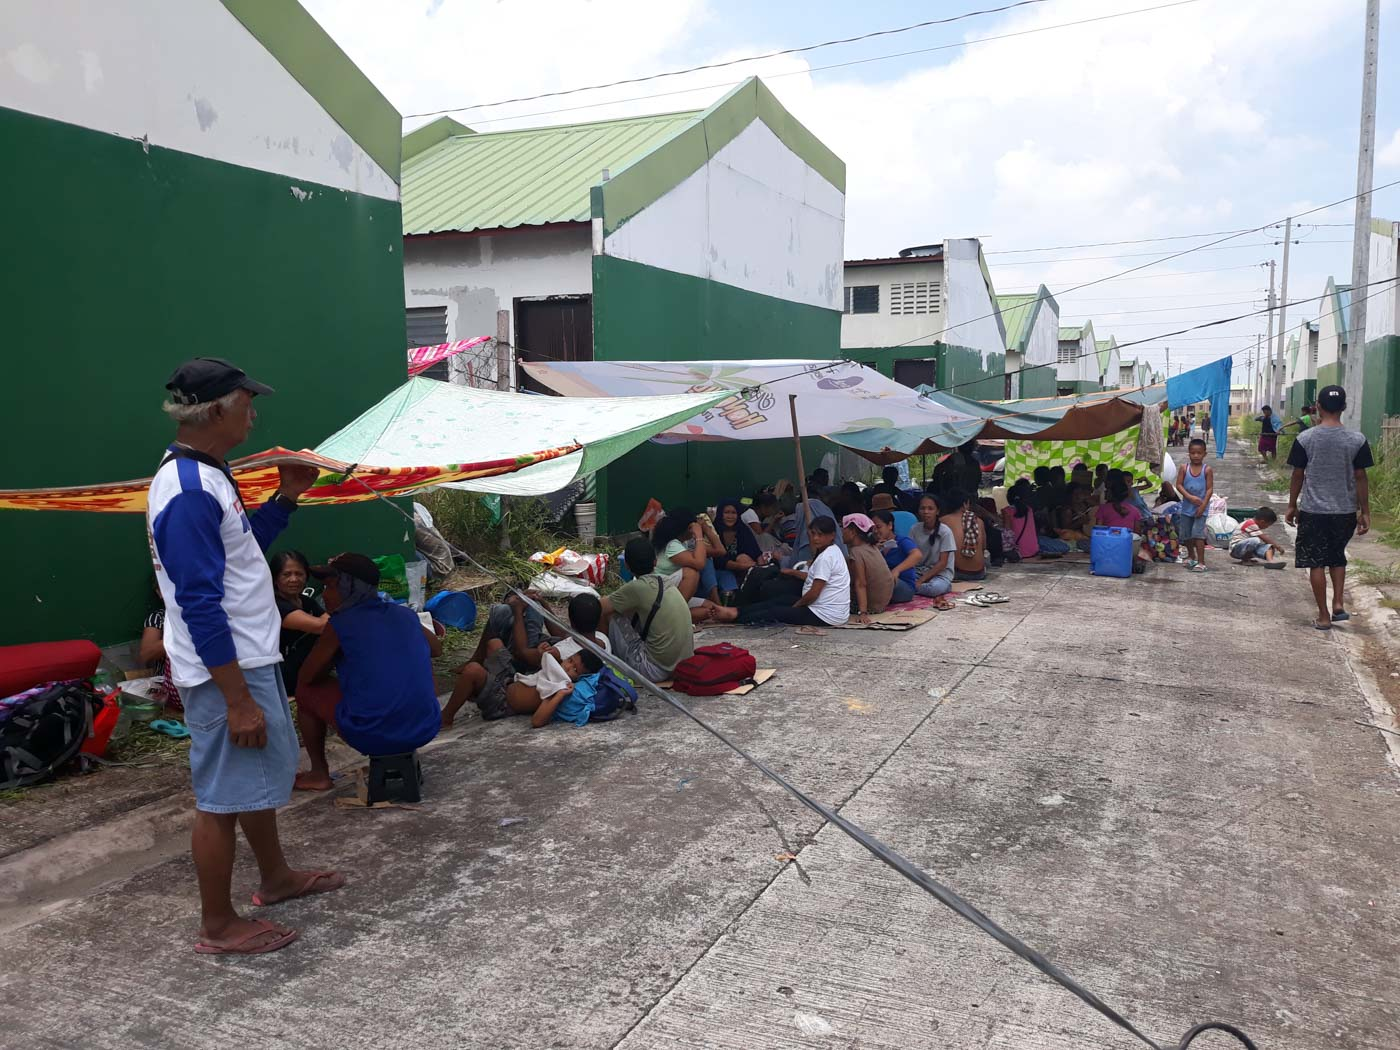 CAMP. Kadamay members set up makeshit tents at the government housing site on August 30 2018. Photo by Marchel P. Espina/Rappler